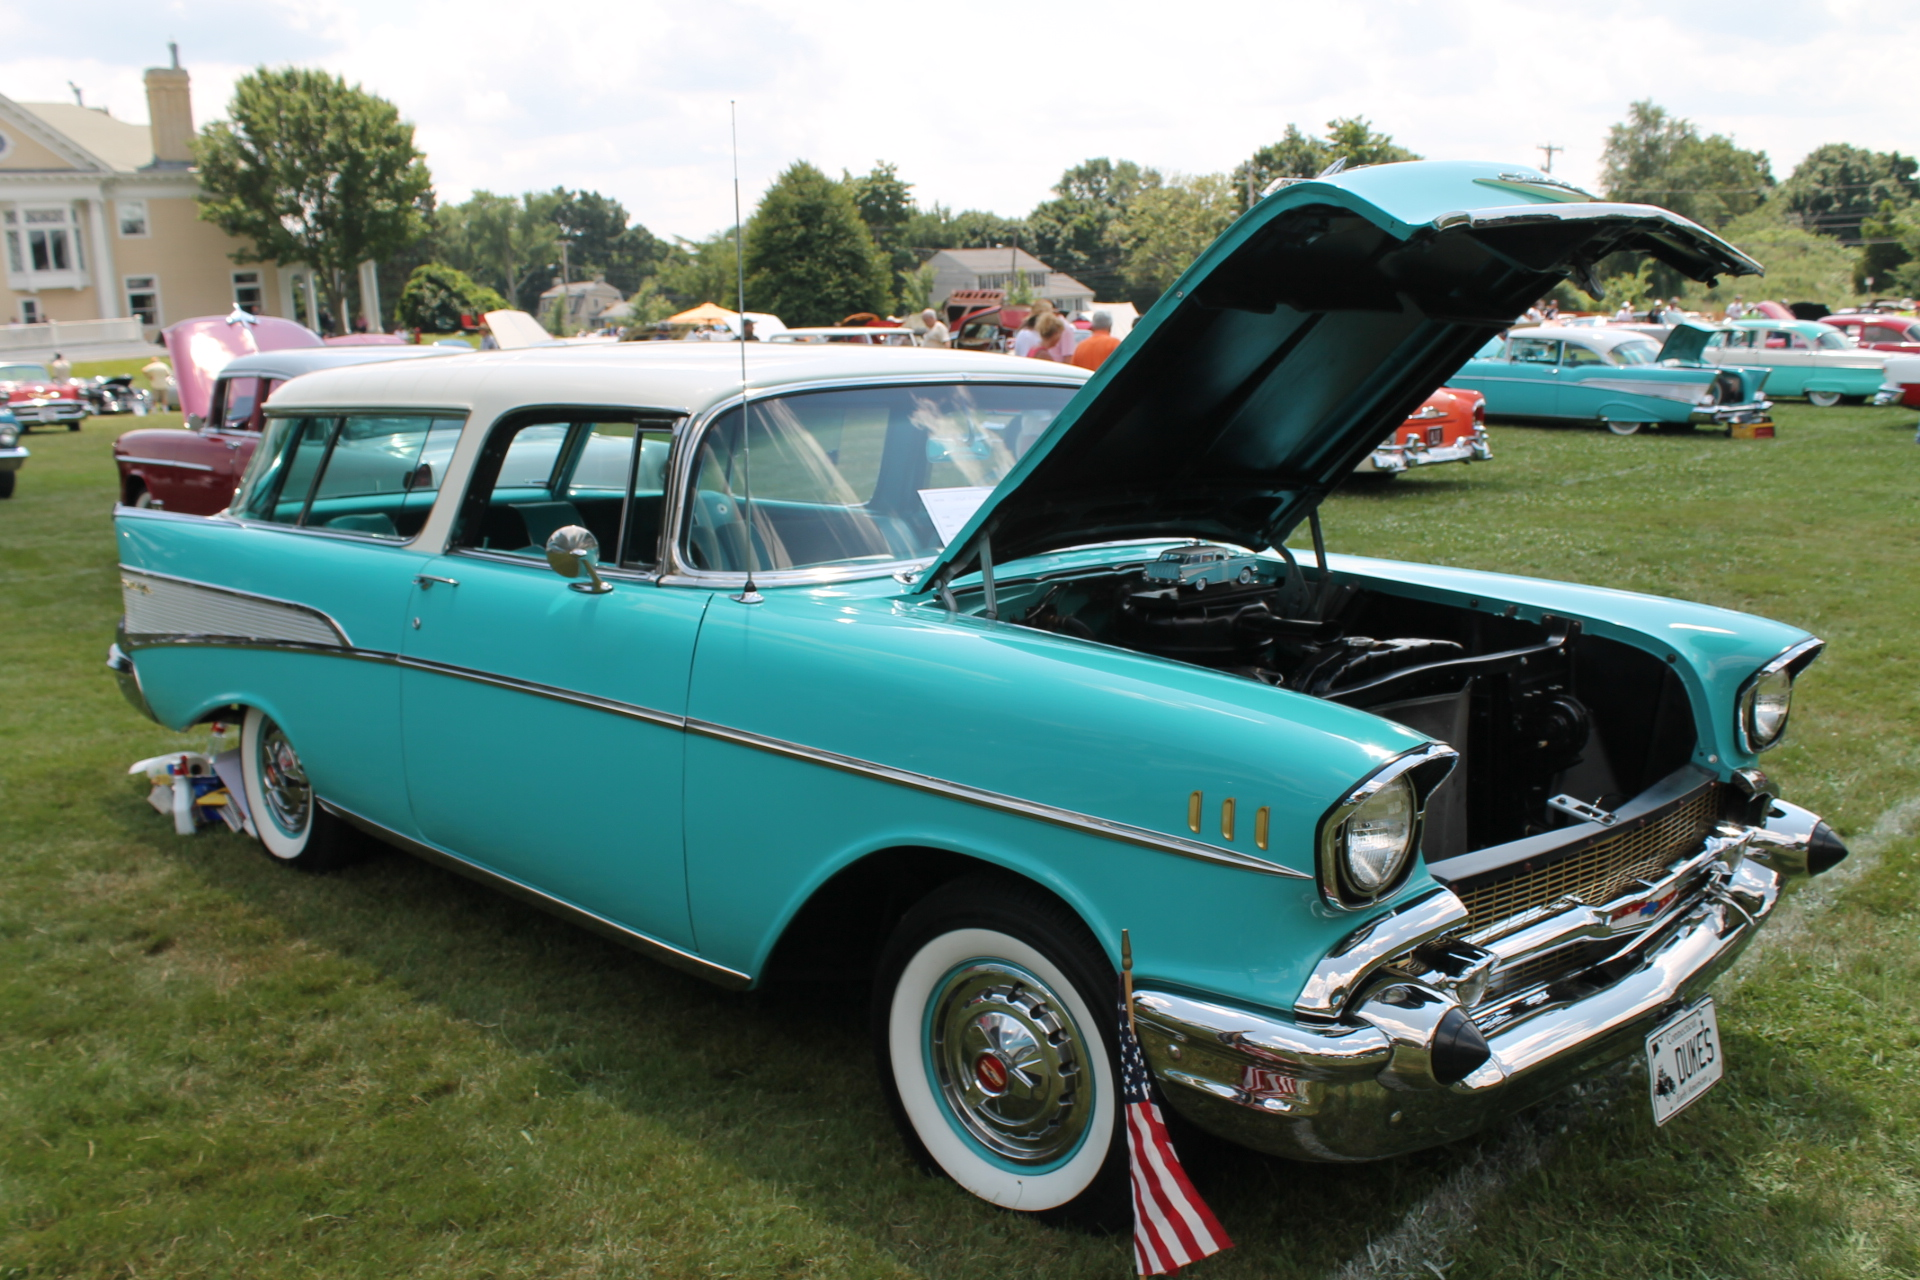 1957 Chevrolet Nomad Station Wagon Interior The Color Of This Was Quite Popular